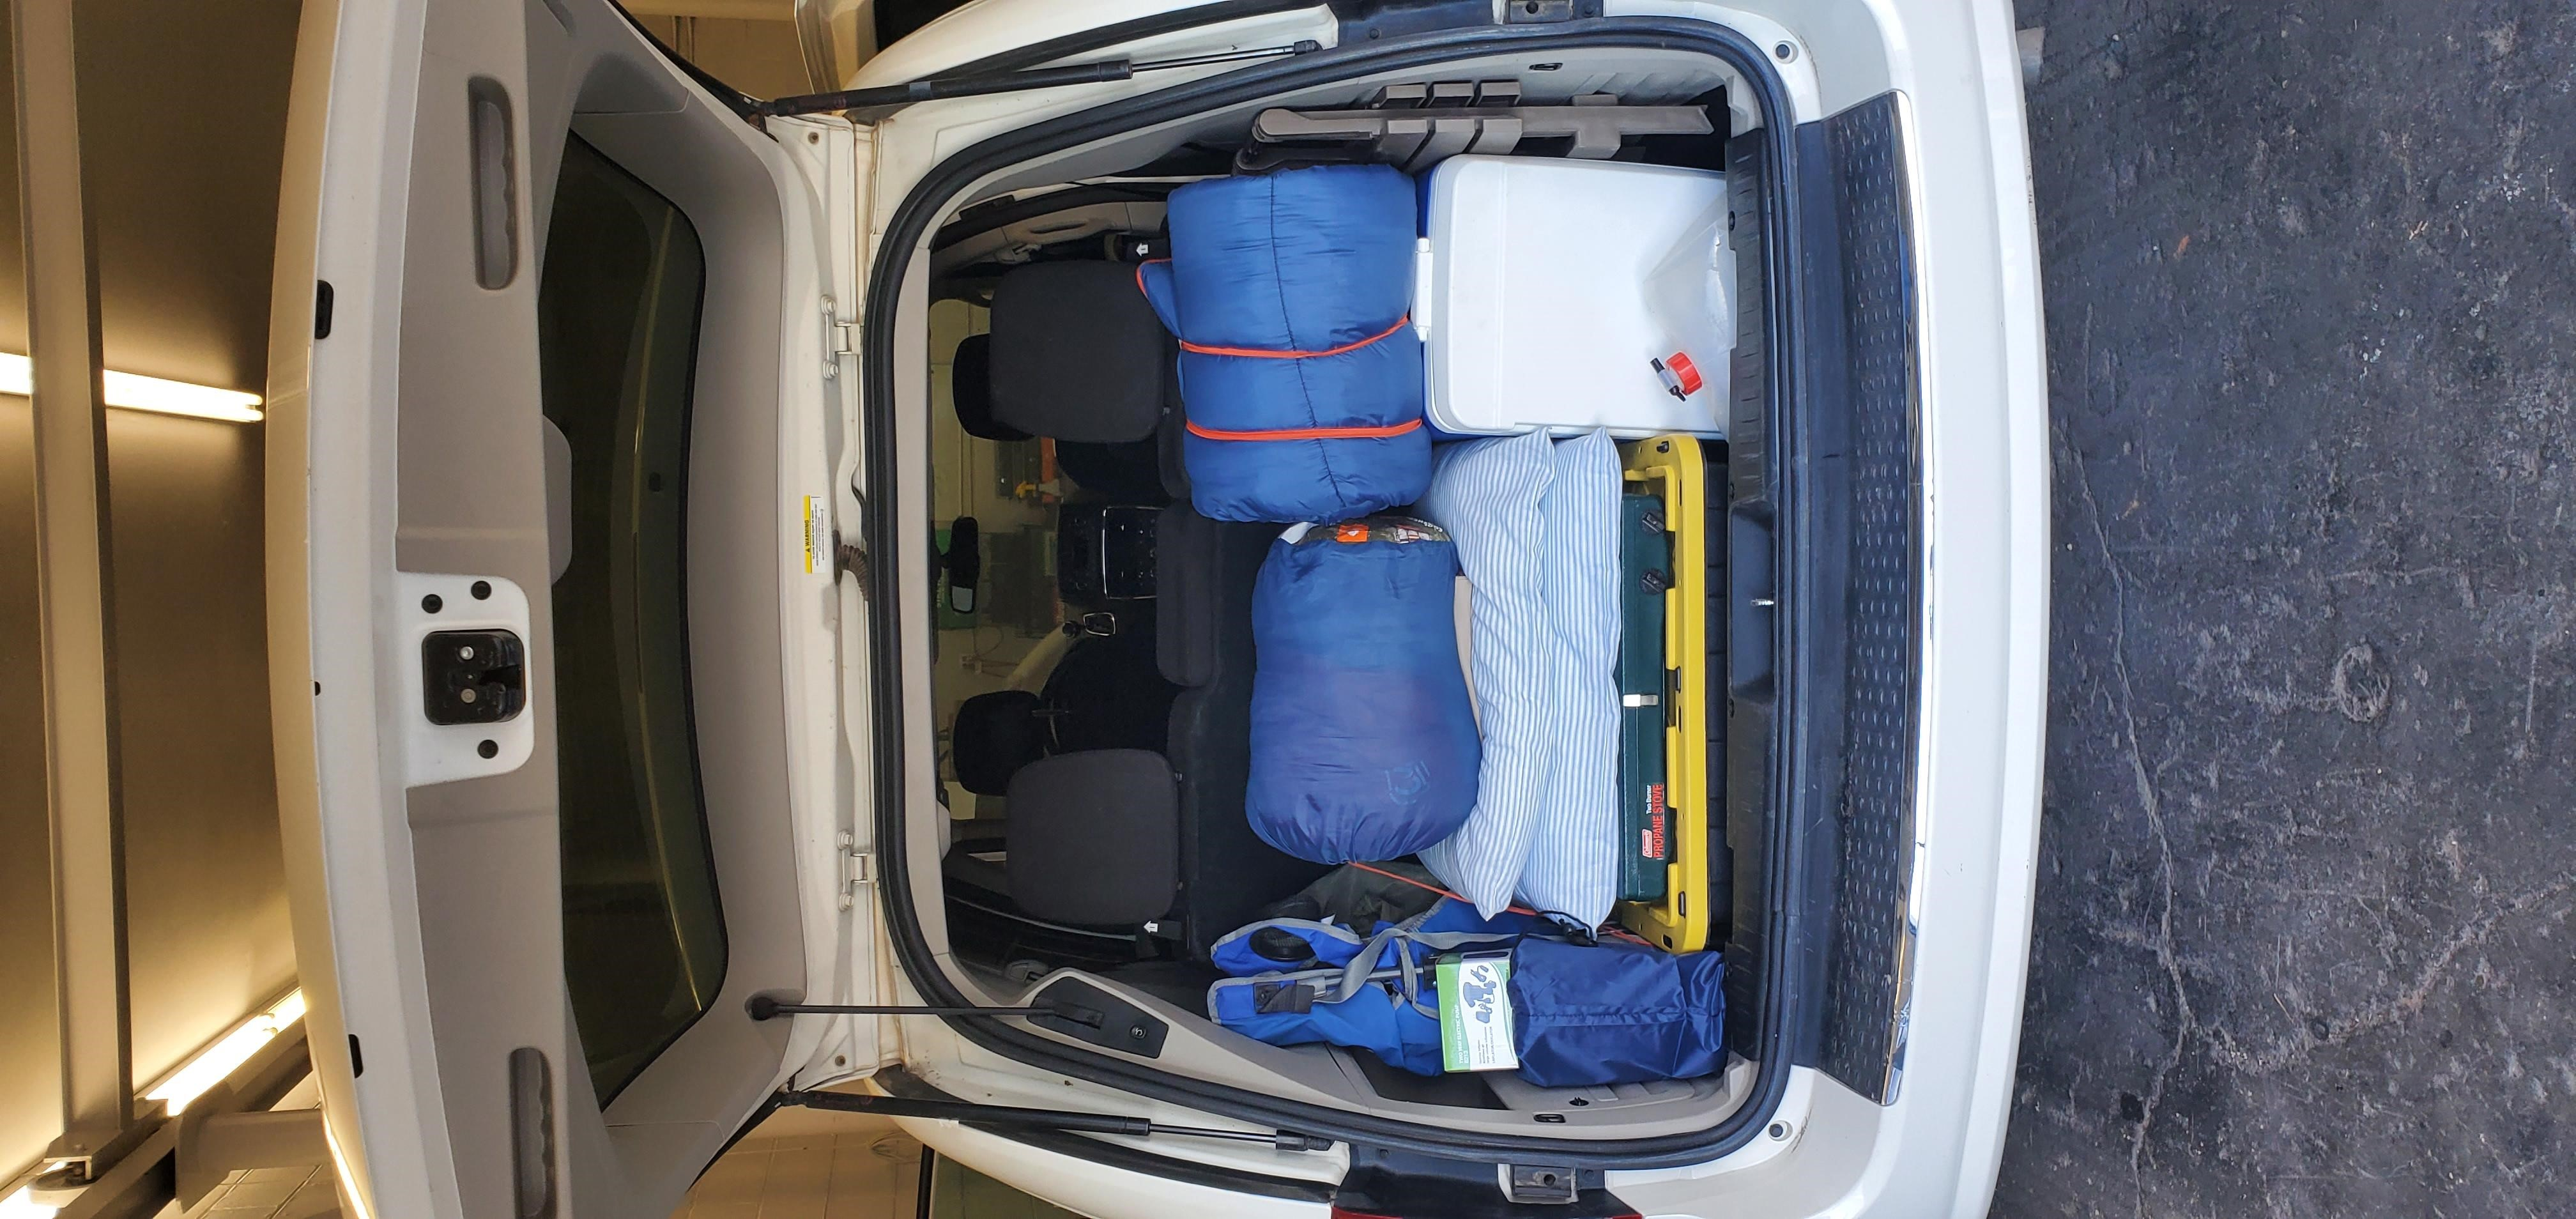 Portable Inflatable Air Mattress Space - Minivan Rental US